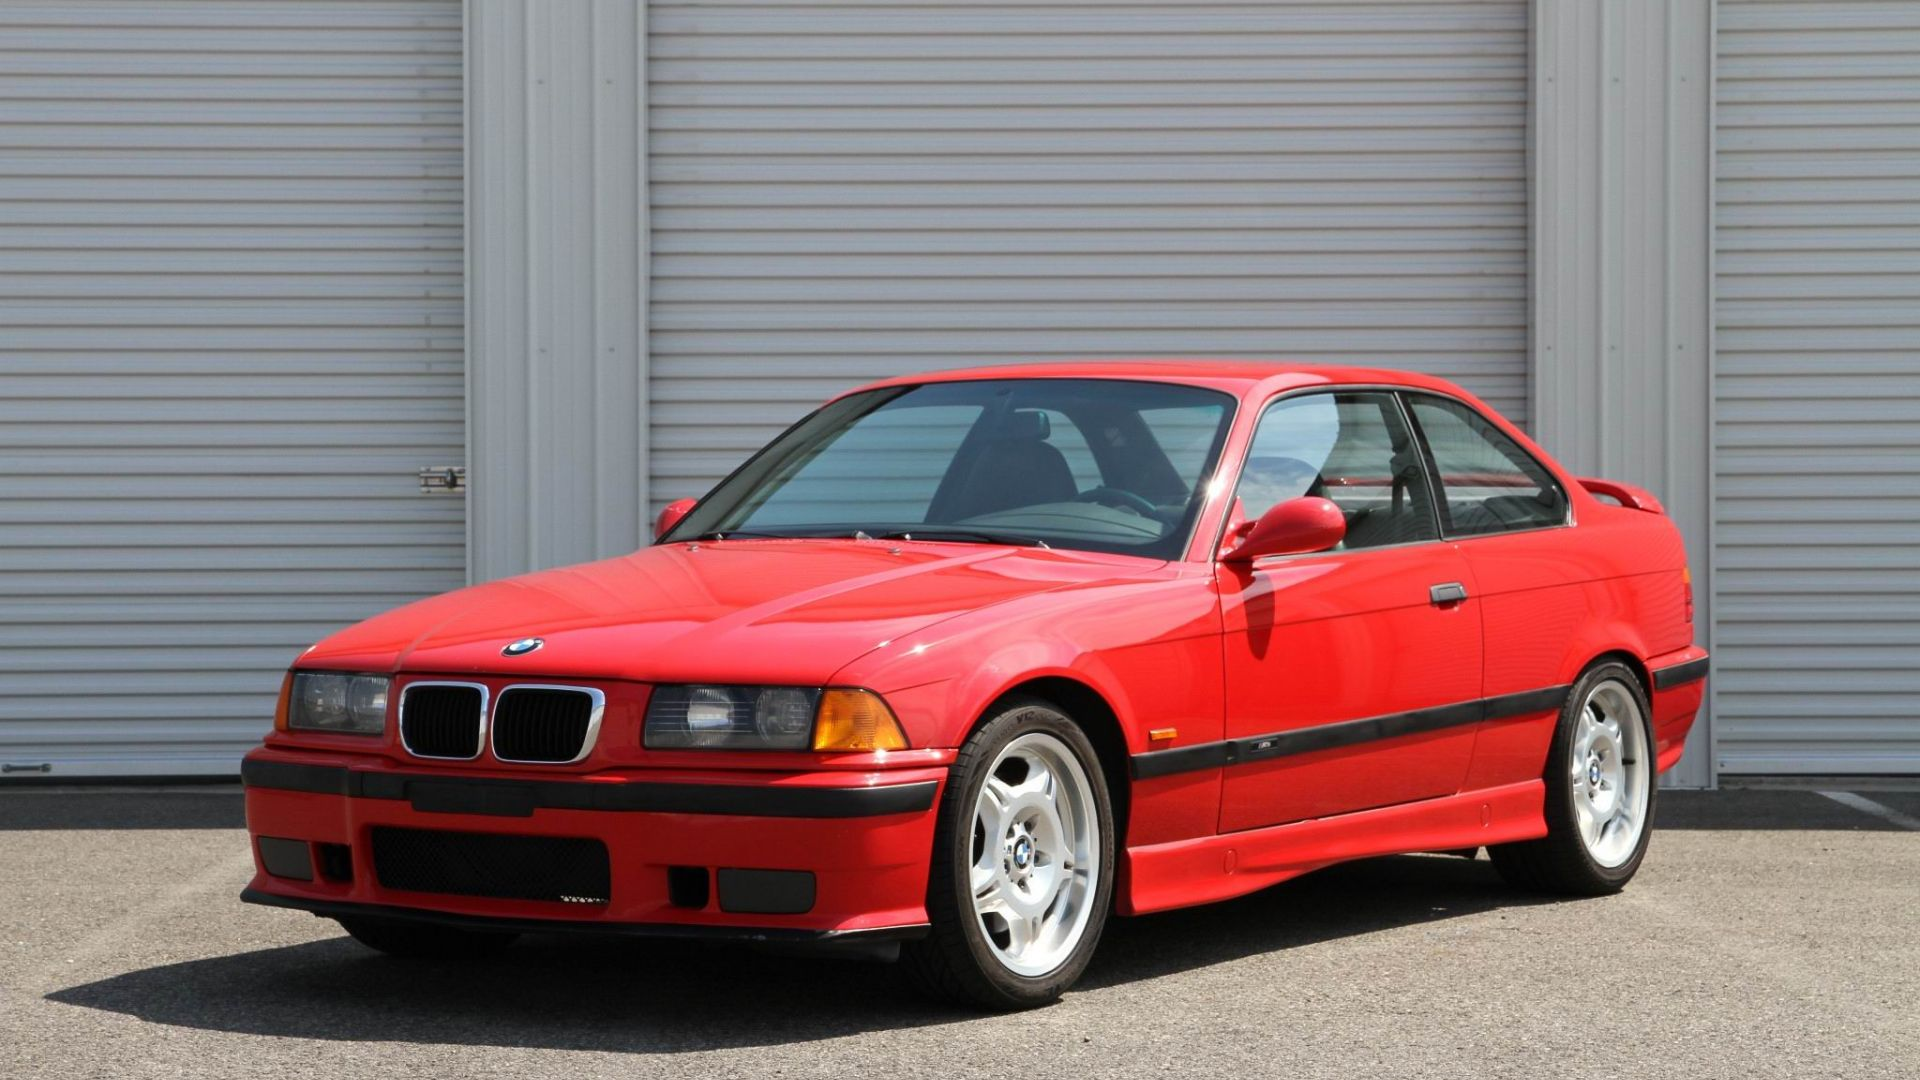 Wallpaper Red BMW M3 coupe, classic car